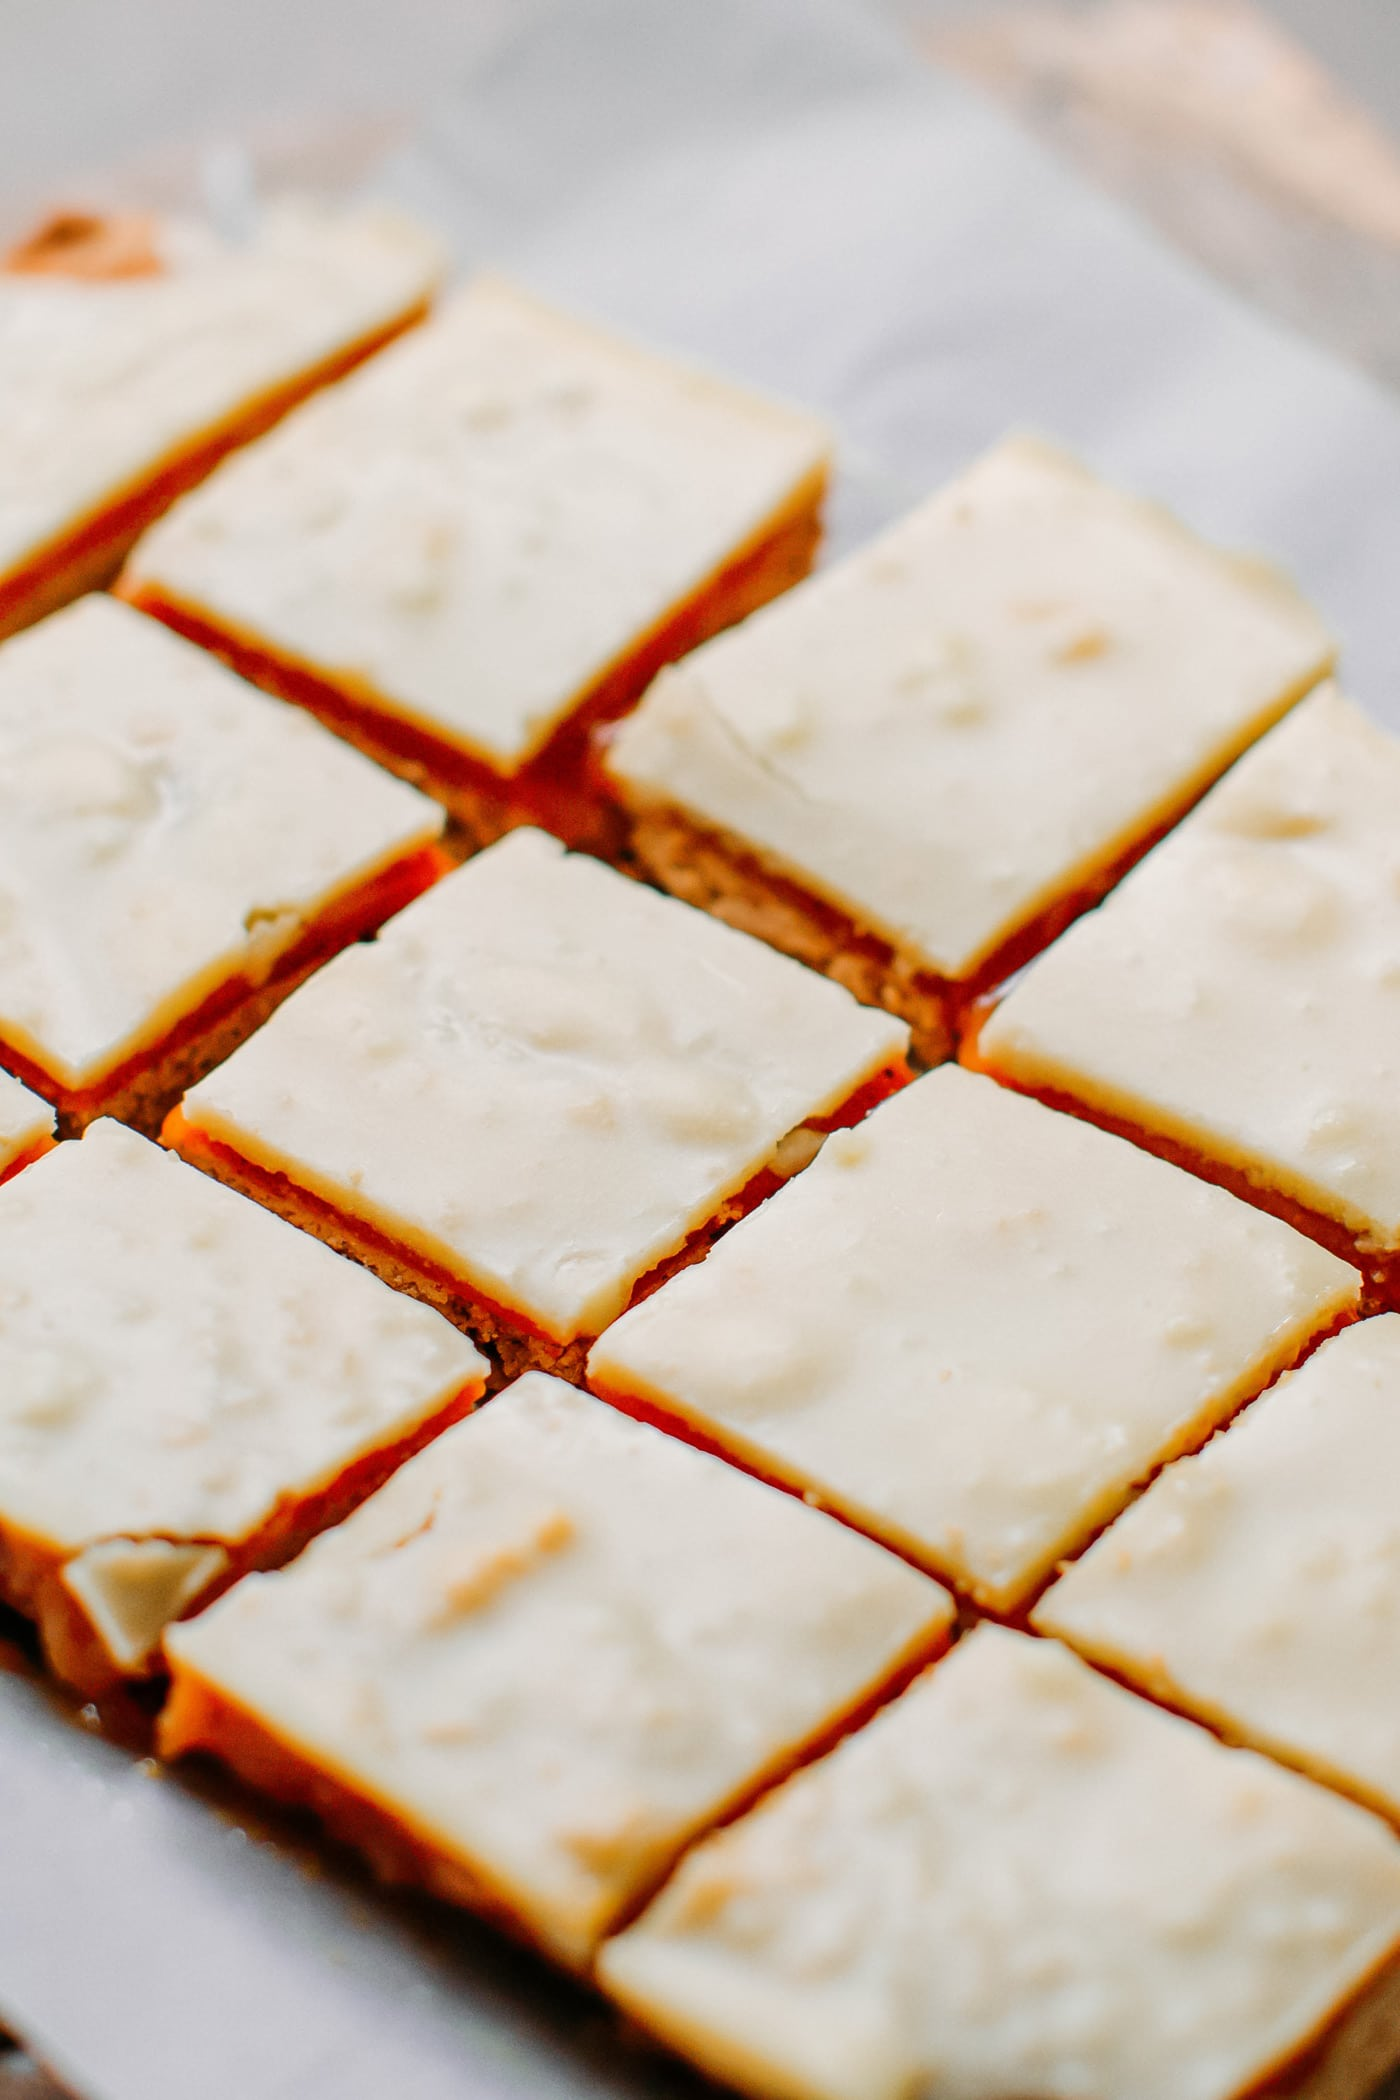 White Chocolate Caramel Gingerbread Bars (Vegan + GF)